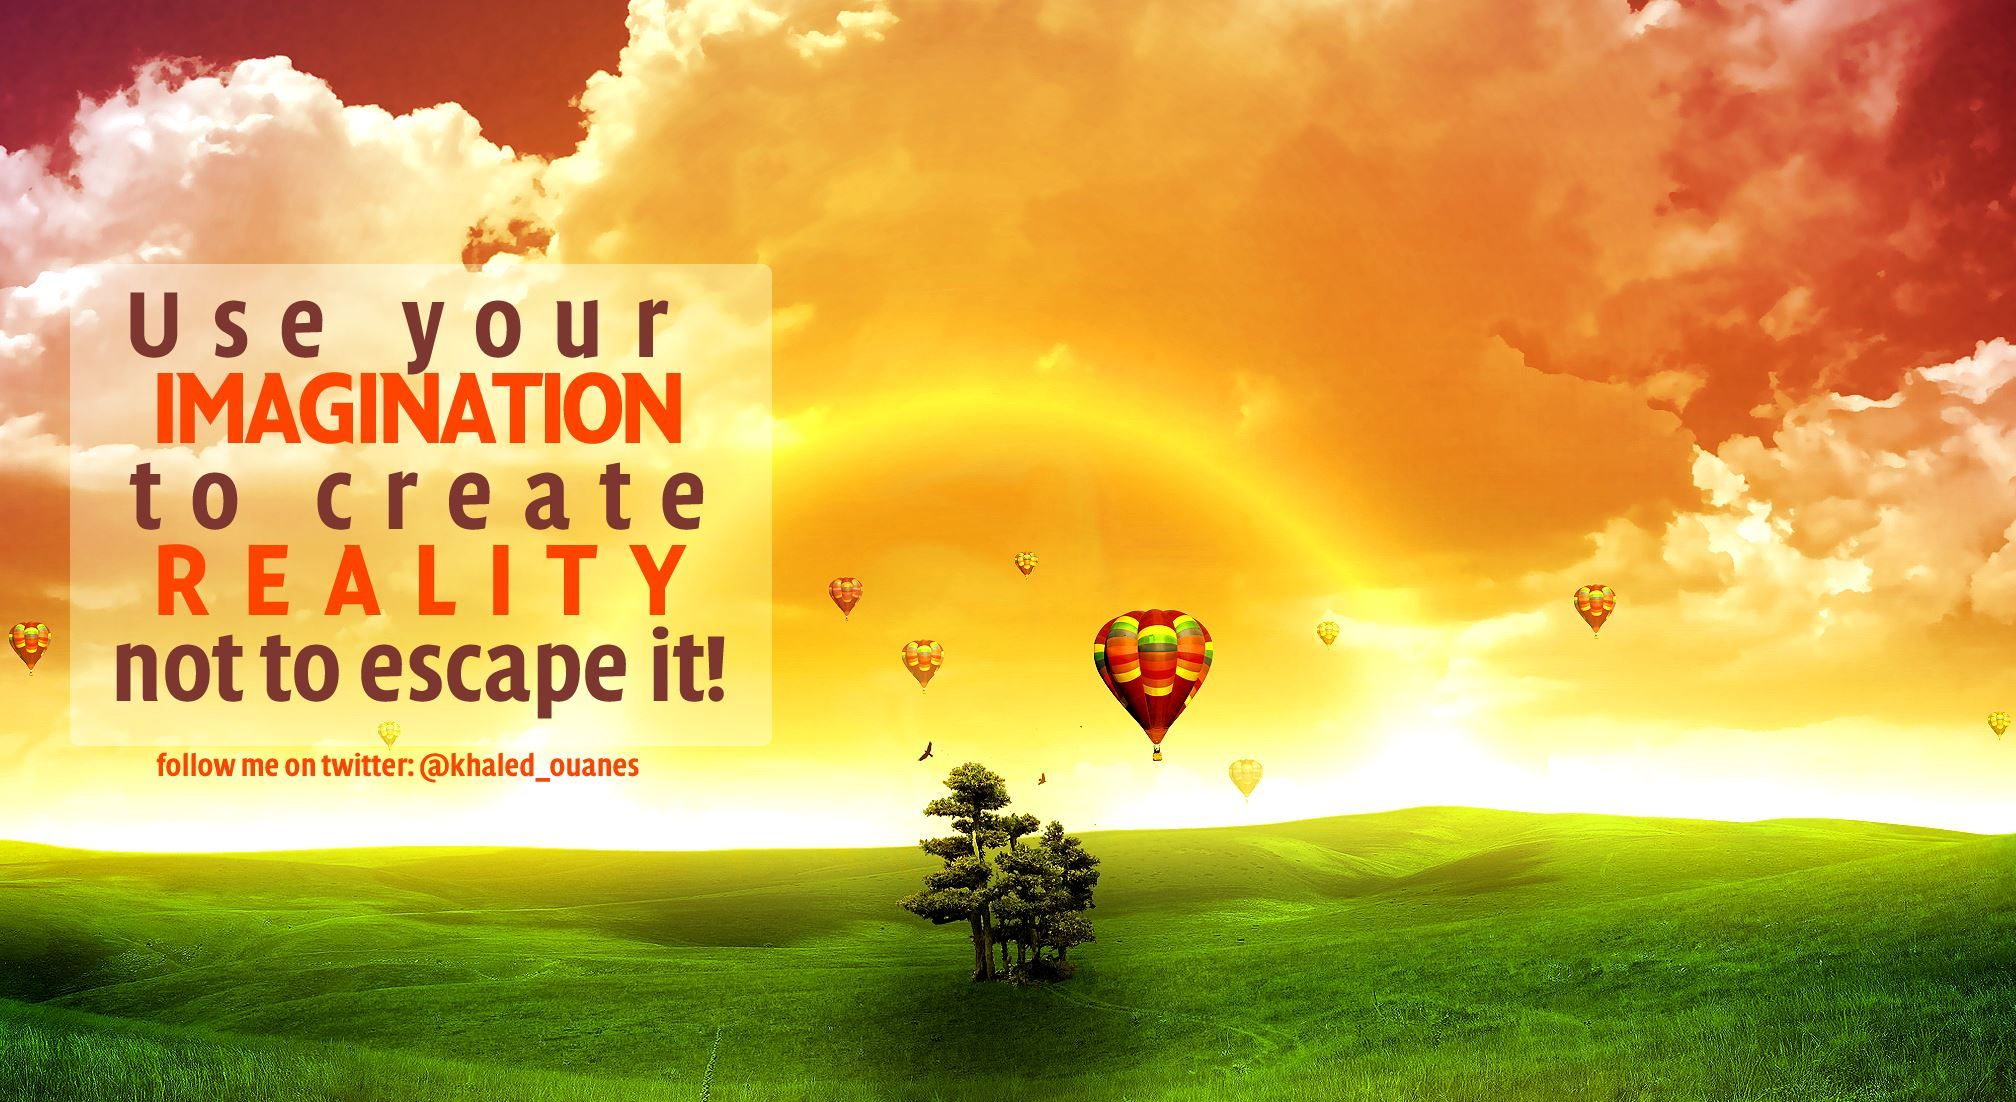 ++ Use your imagination  to create  REALITY  not to escape it!